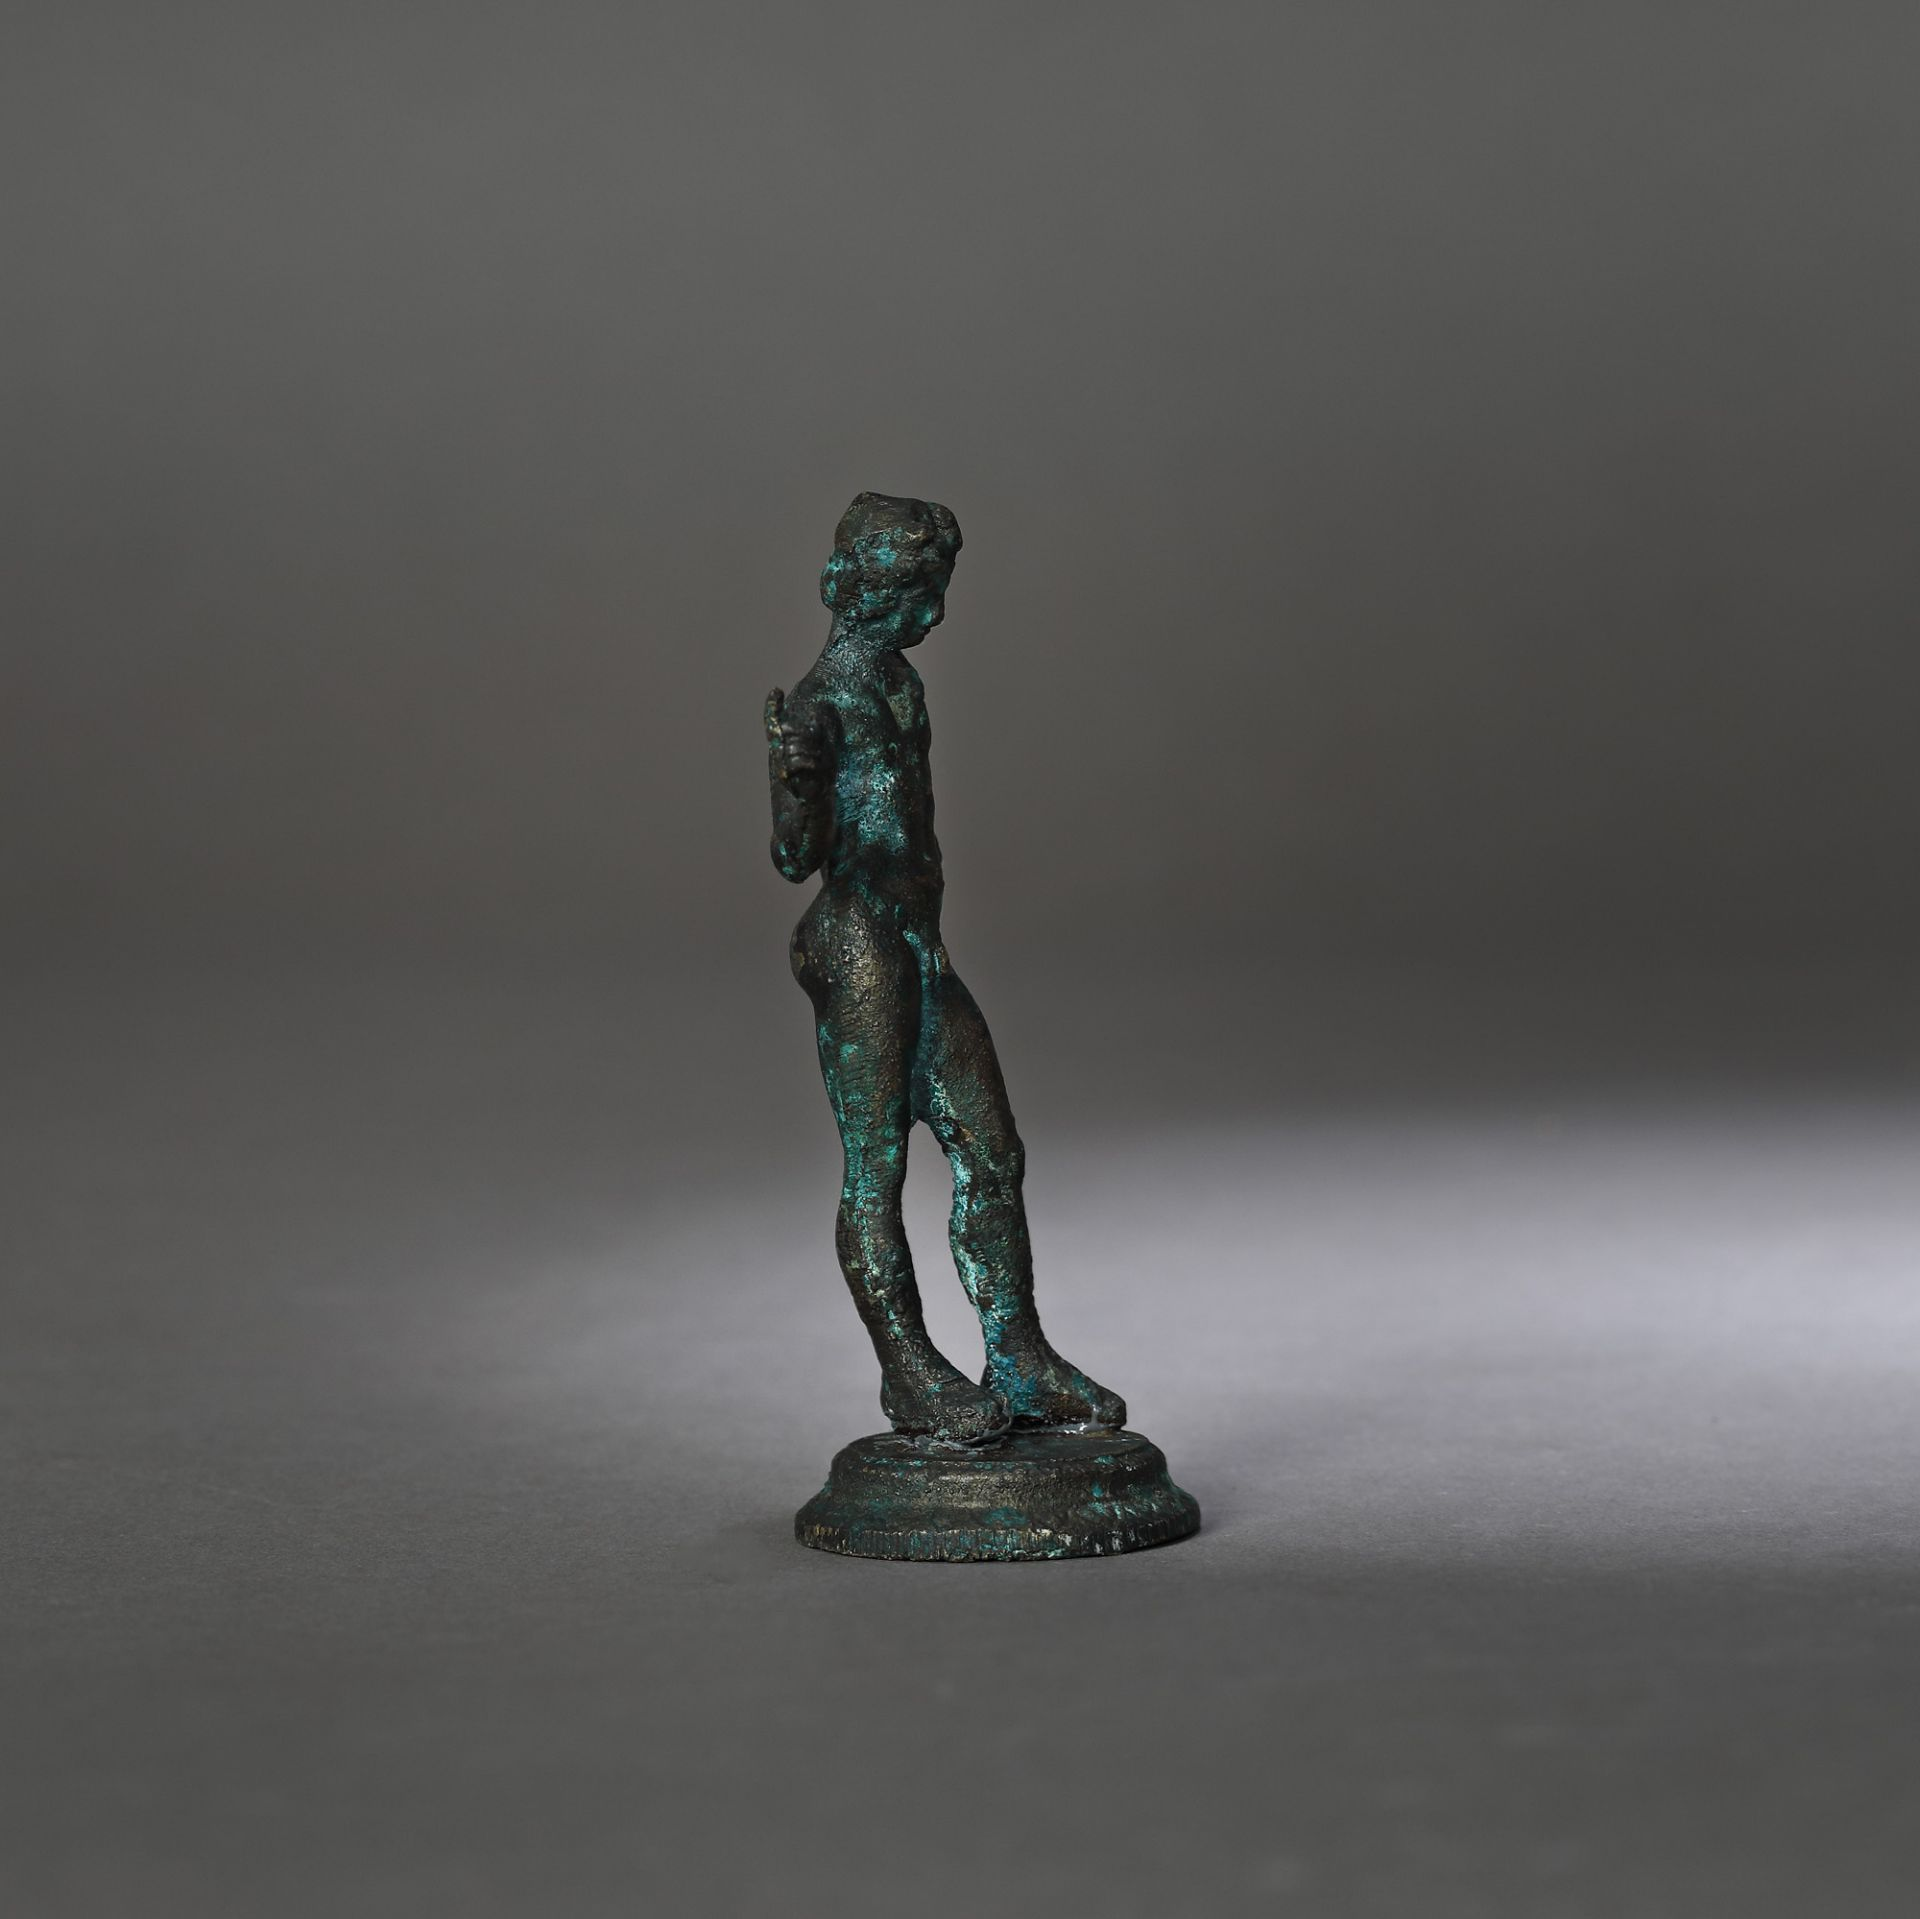 Bronze statuette depicting an ephebe, 2nd-1st century B.C. - Bild 2 aus 3